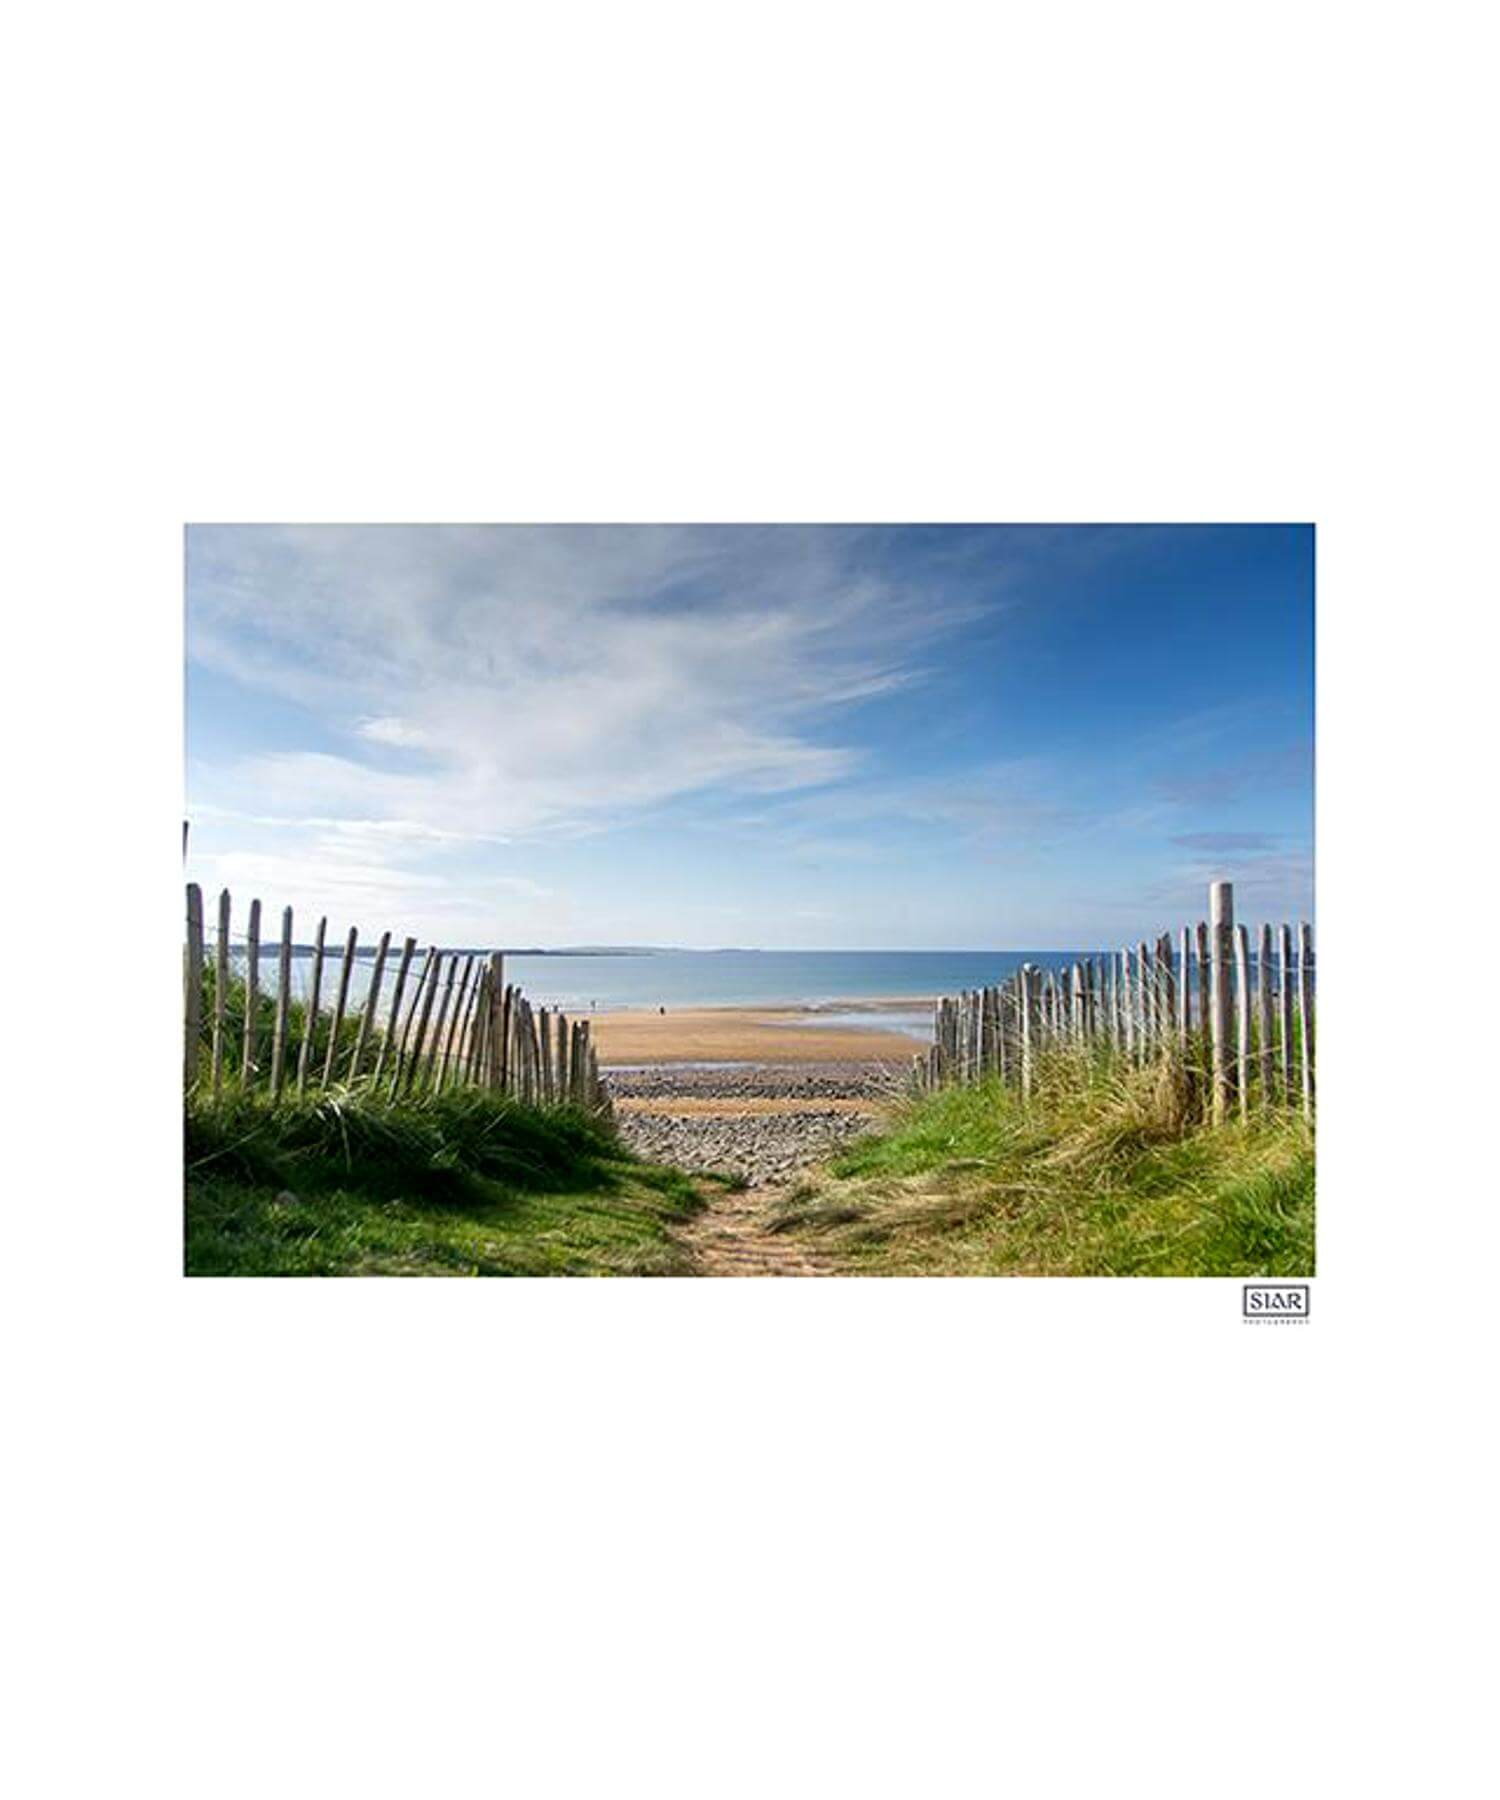 Spanish Point Beach - [Siar Photography] - Wall Art & Photography - Irish Gifts